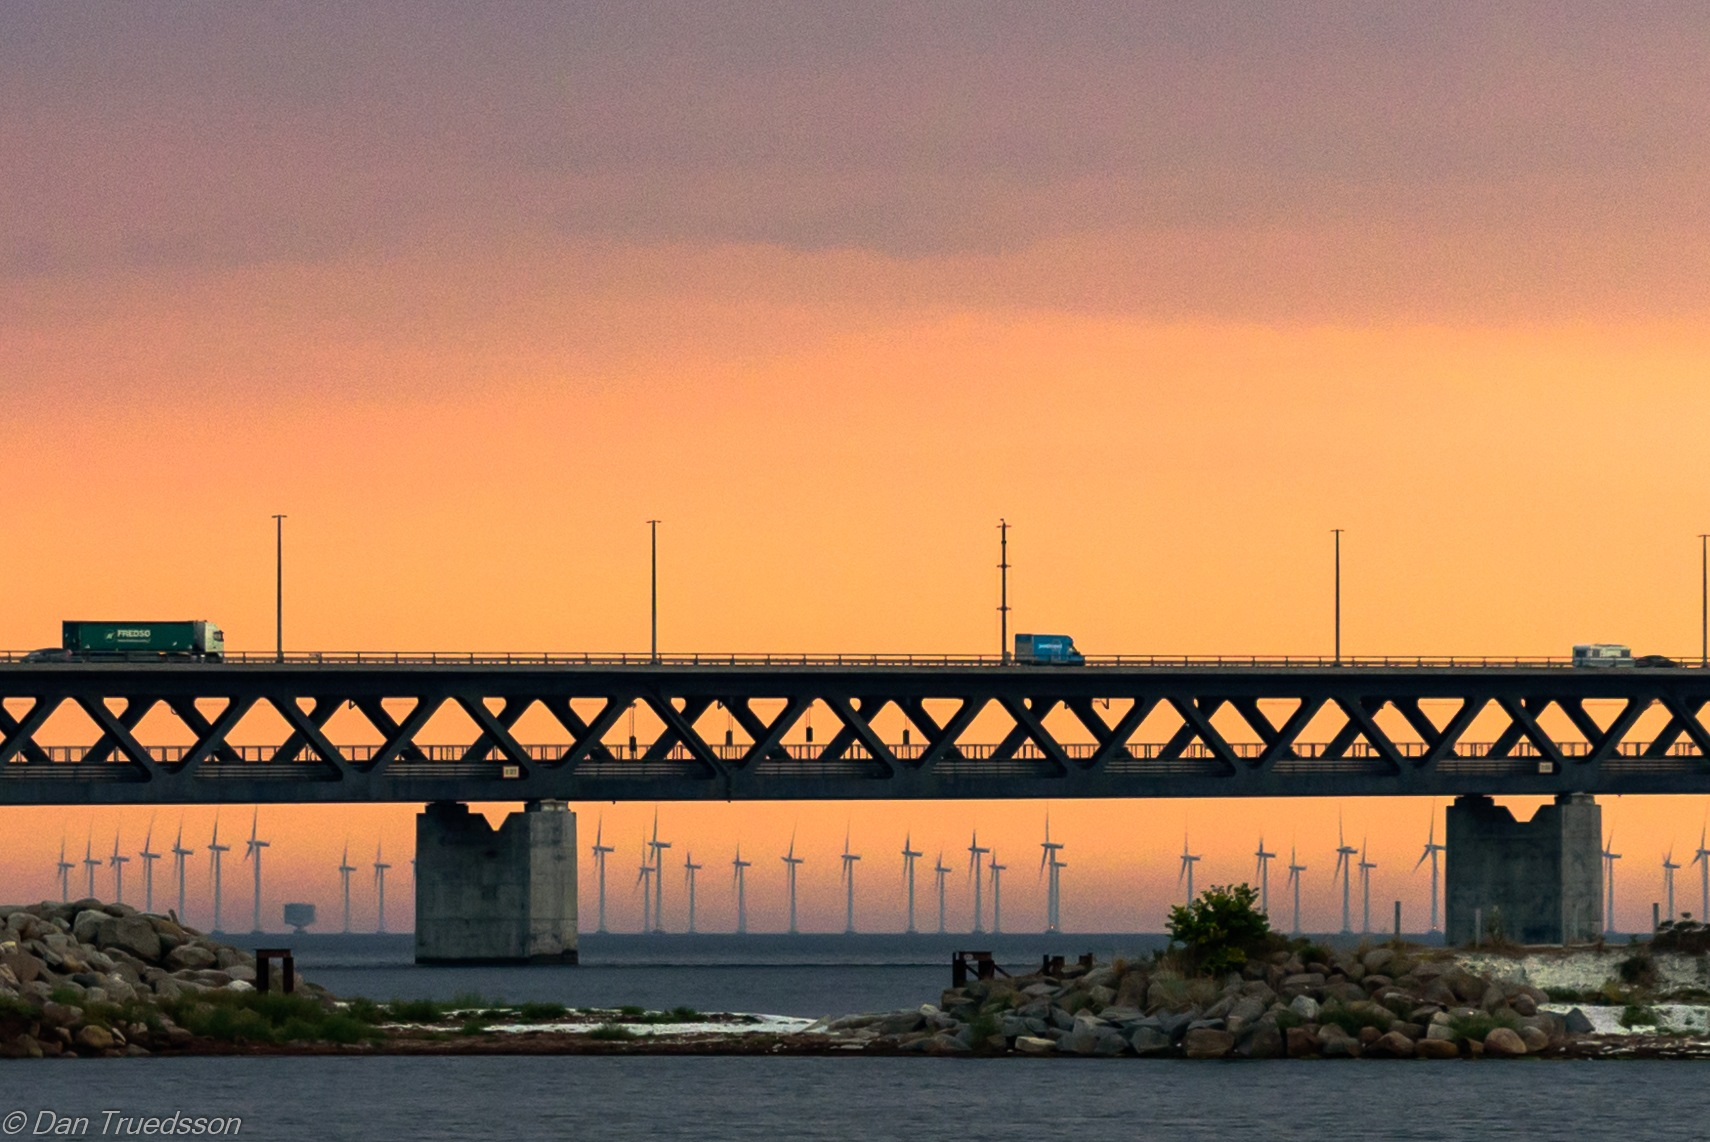 A little bit of the Öresund Bridge by Dan Truedsson